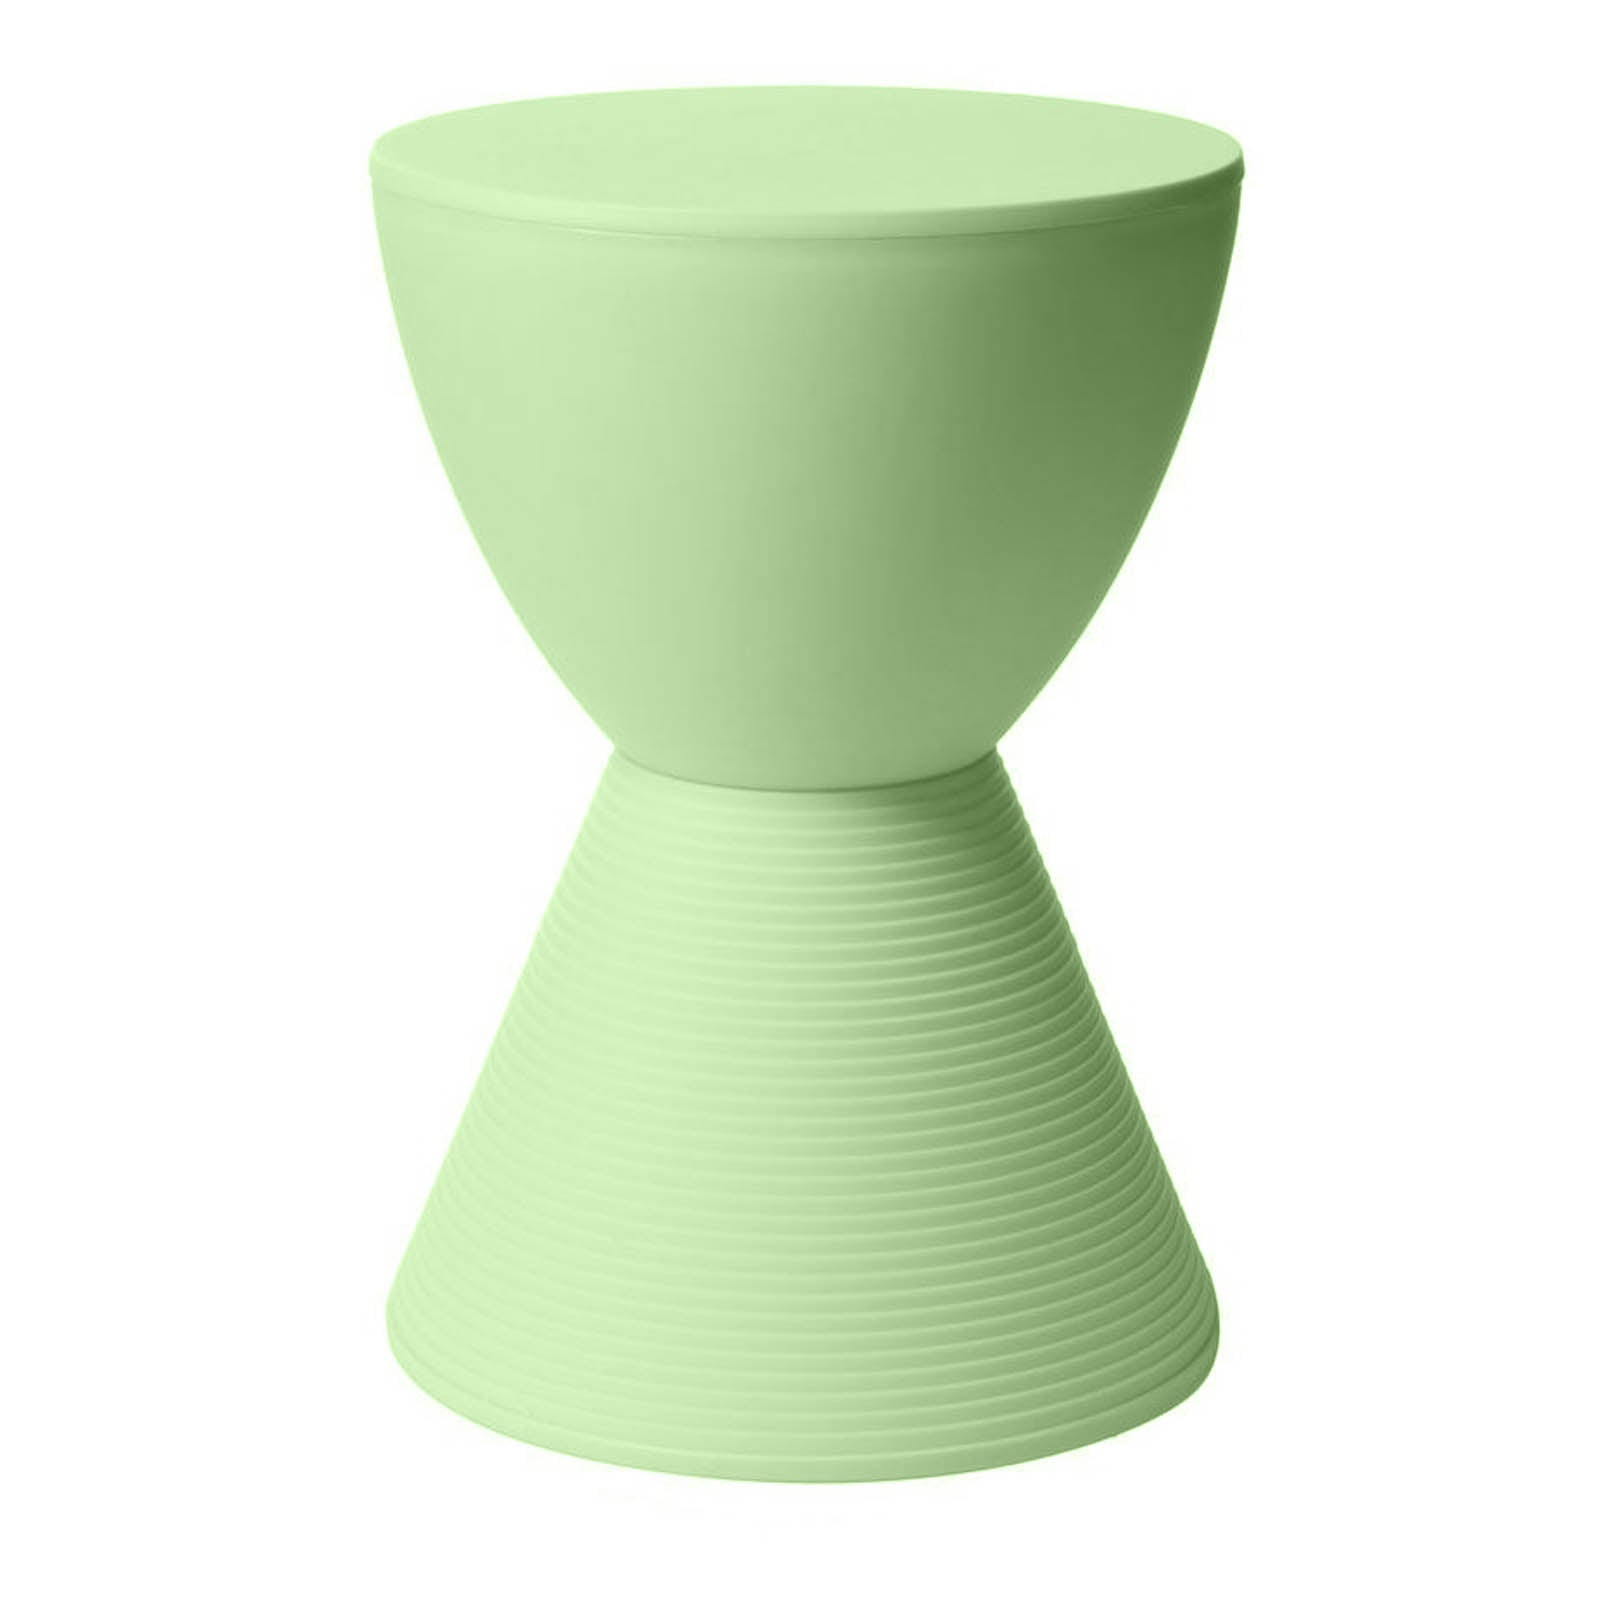 Side table or stool PC-051-Green -  طاولة جانبية أو كرسي - Shop Online Furniture and Home Decor Store in Dubai, UAE at ebarza